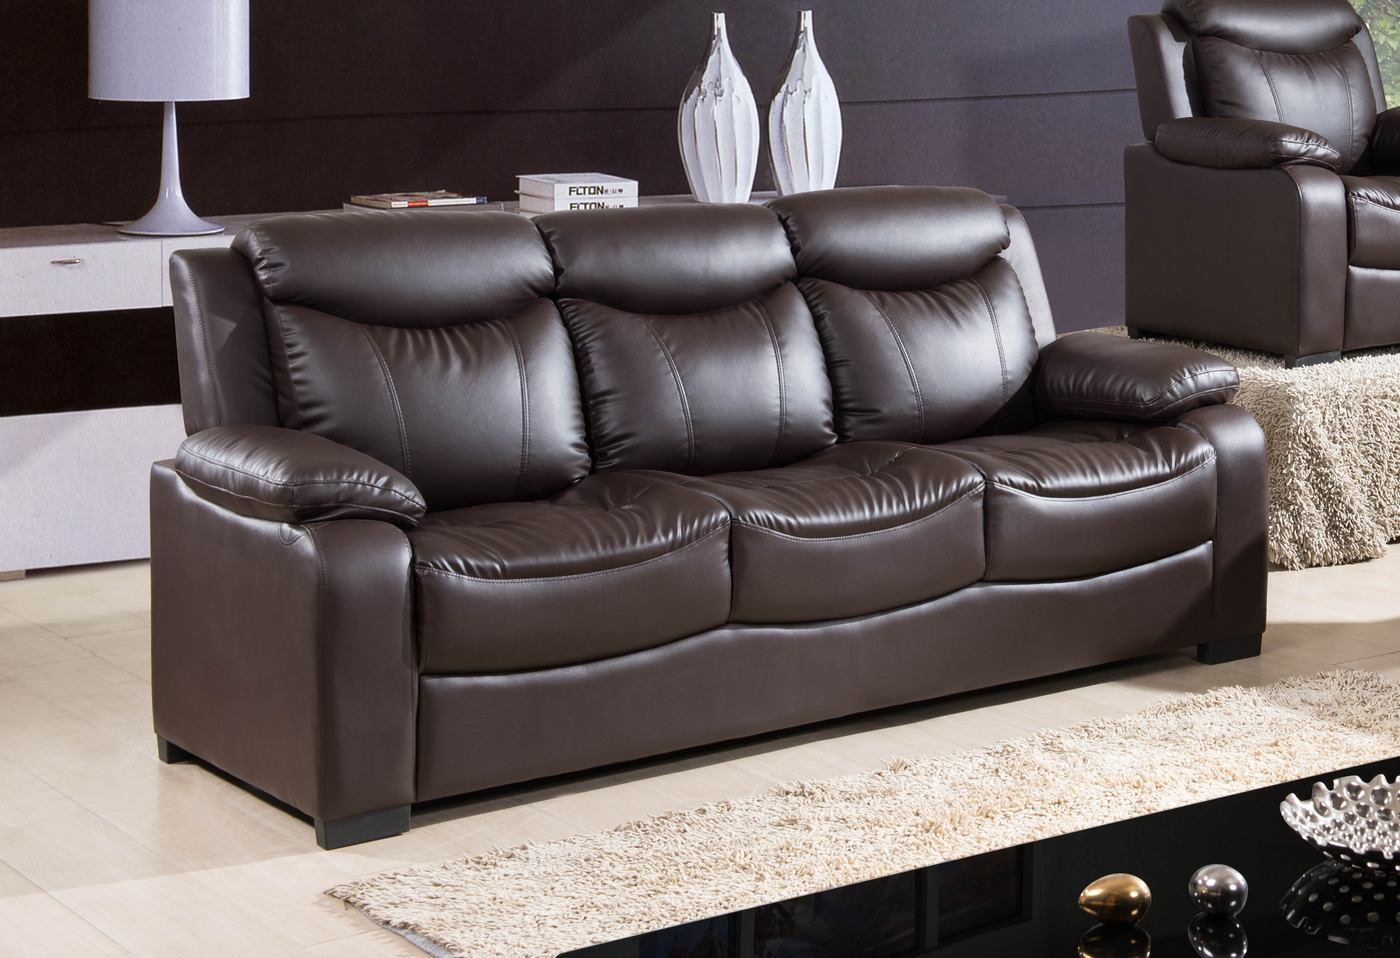 4087 modern bonded leather sectional sofa with recliners making new covers 5506 contemporary dark brown